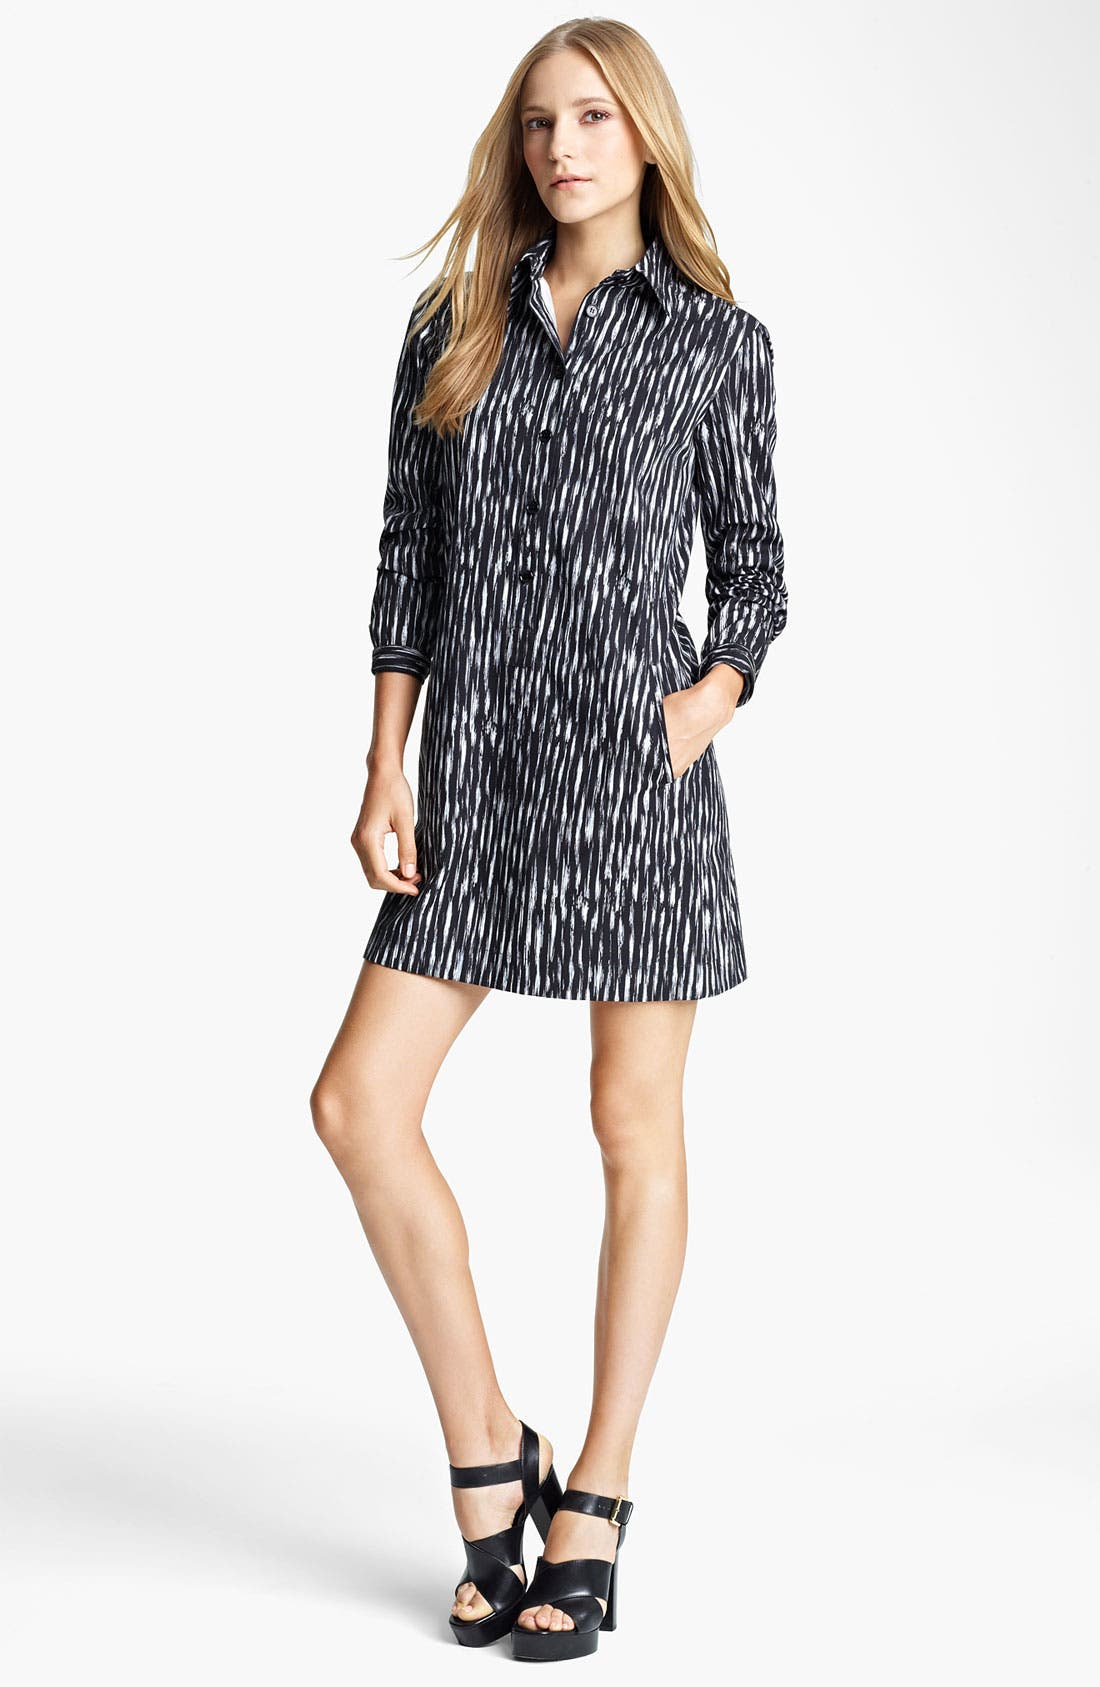 Main Image - Michael Kors Ikat Print Poplin Tunic Dress